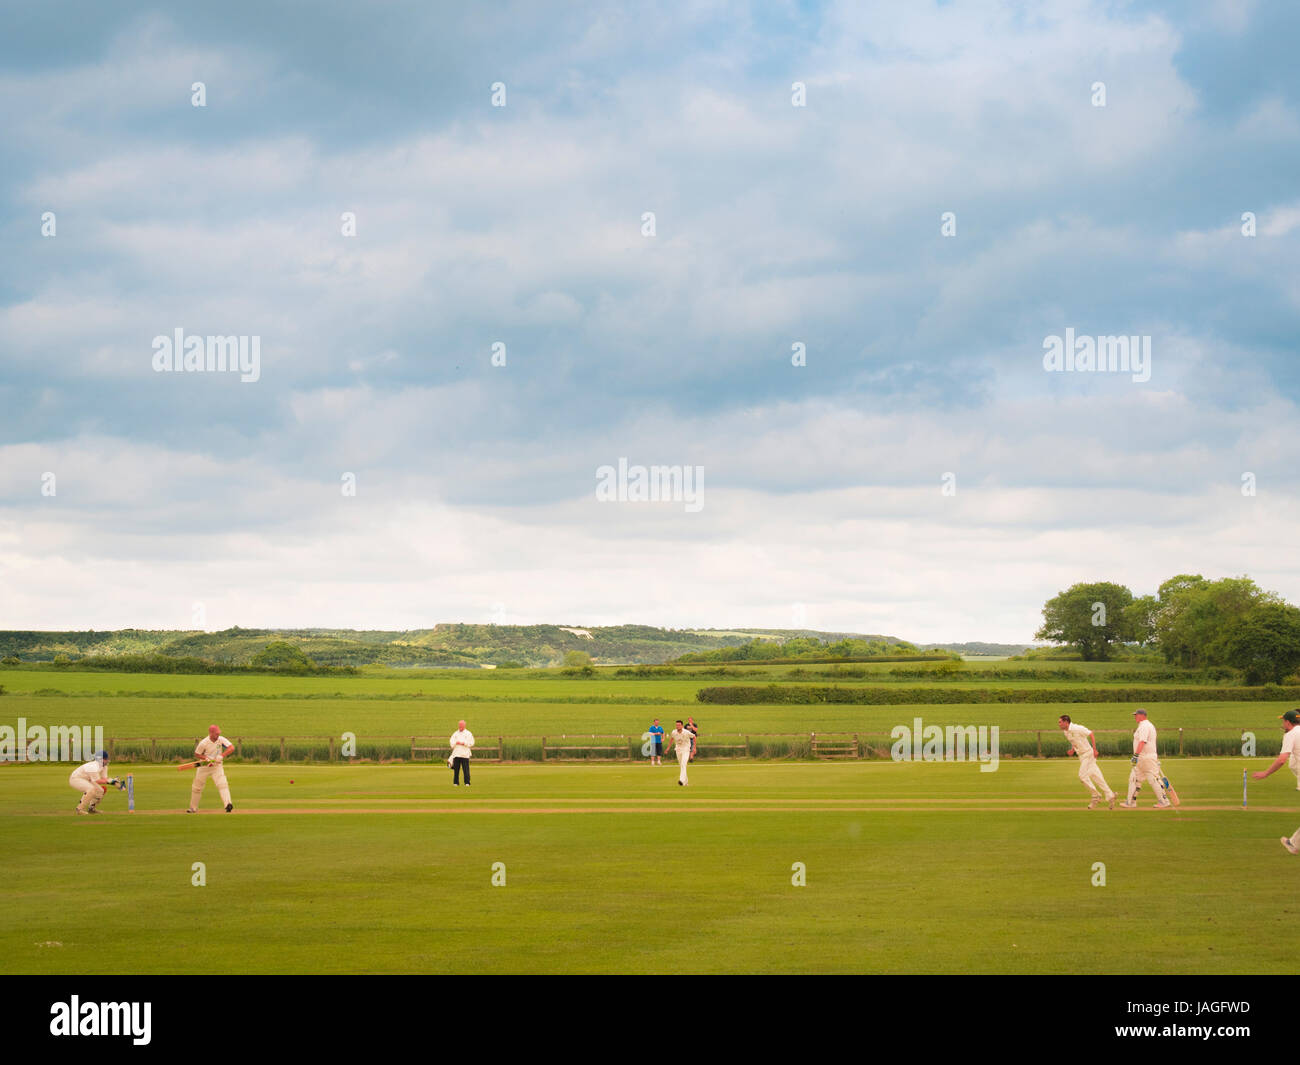 Game of Cricket being played in typical British village of Sessay with the White Horse in the background. - Stock Image